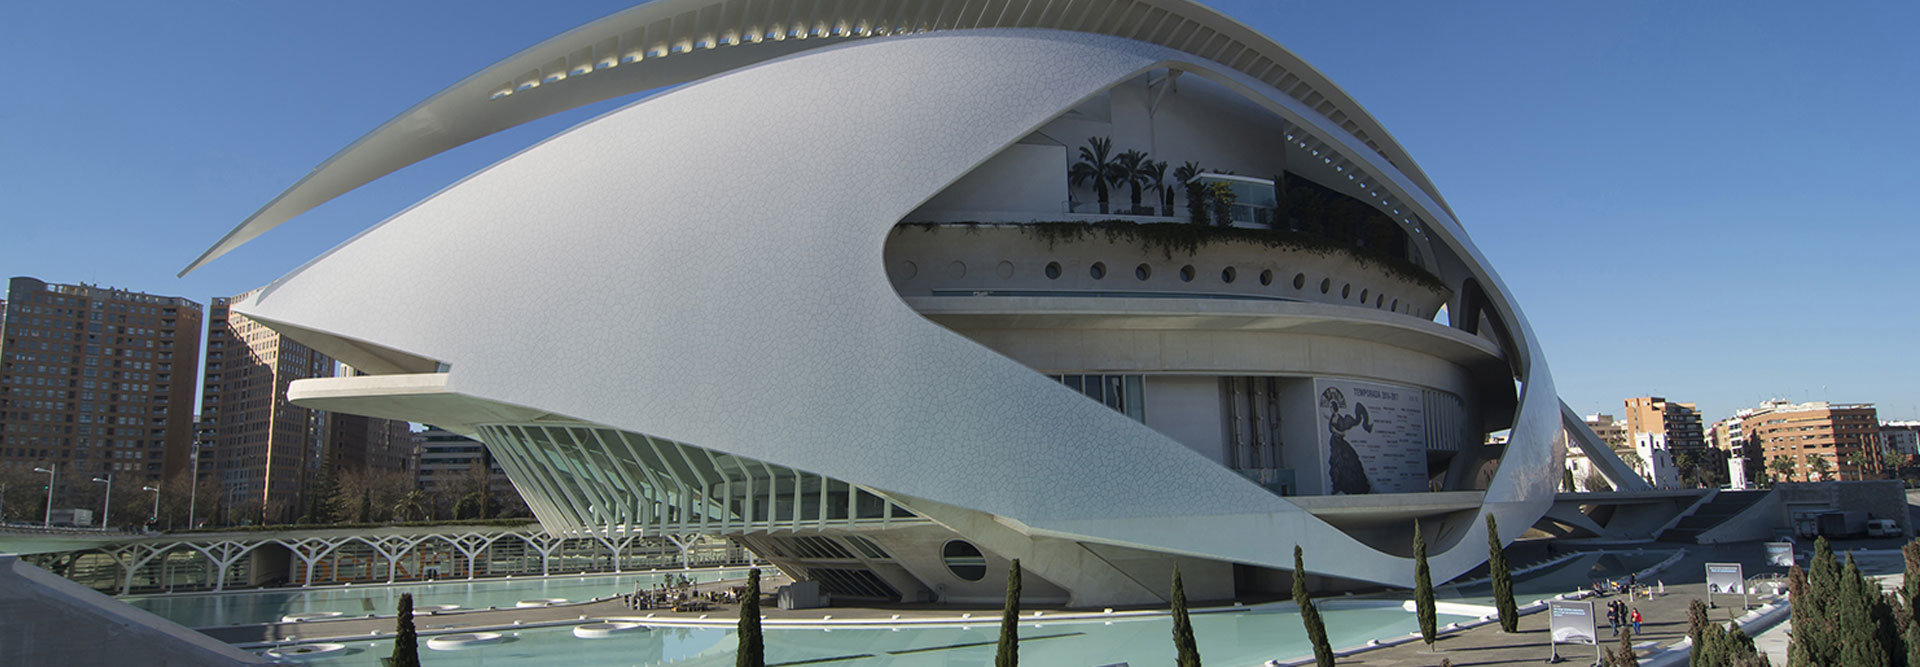 Palau-de-les-arts-Reina-Sofia-Valencia-experiences-and-gateways